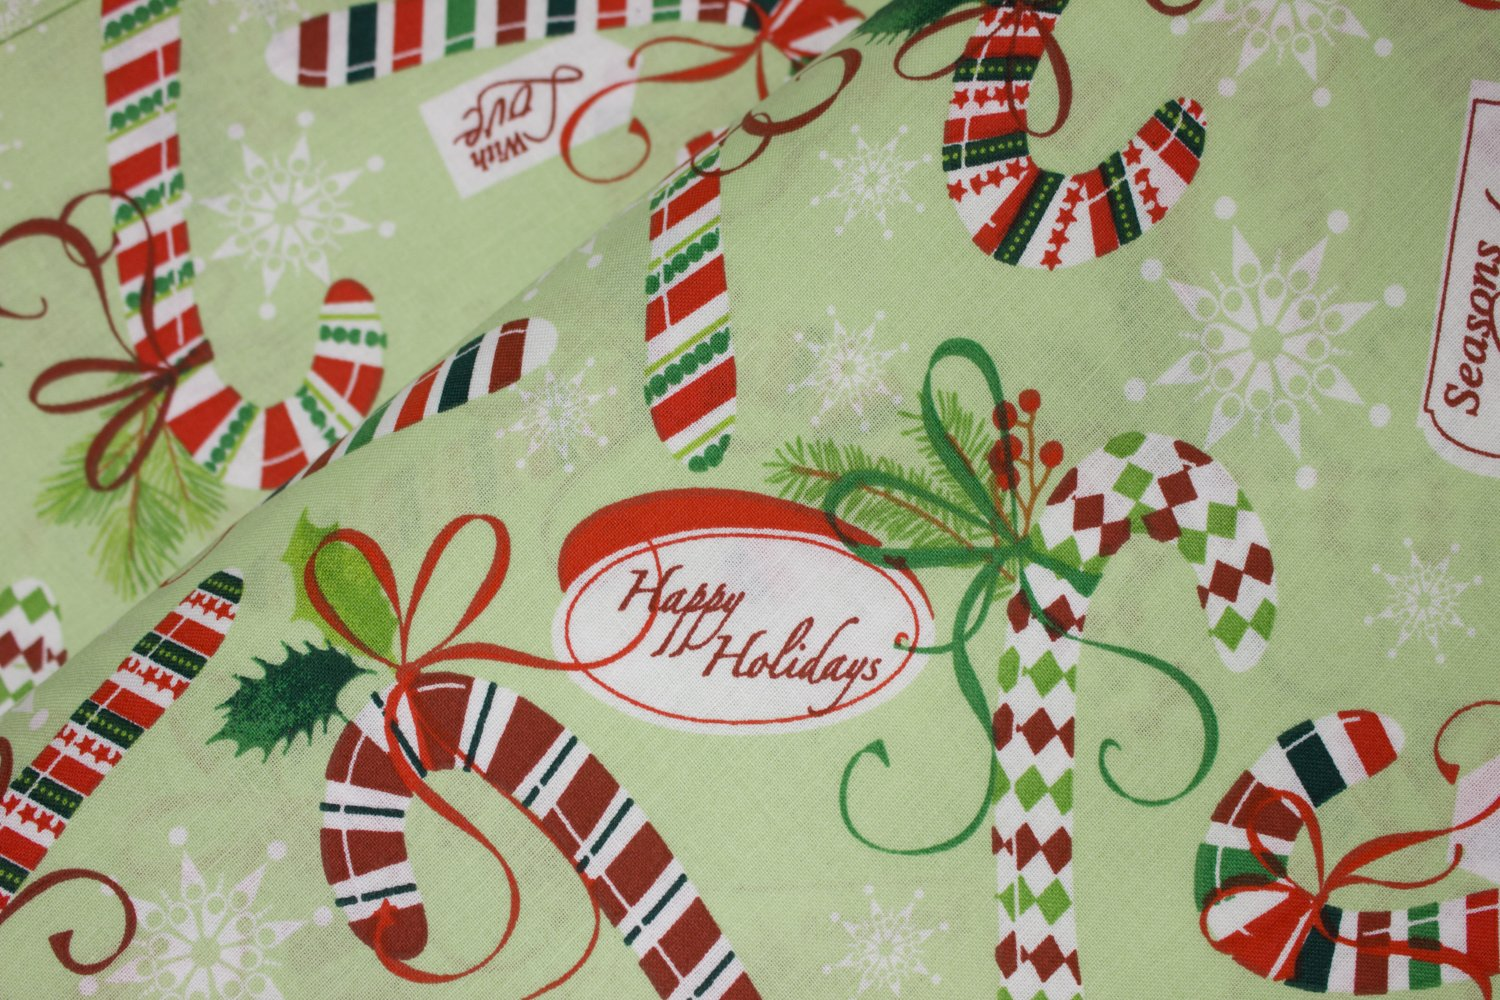 Red, White, and Green Candy Canes with Tags on Light Green